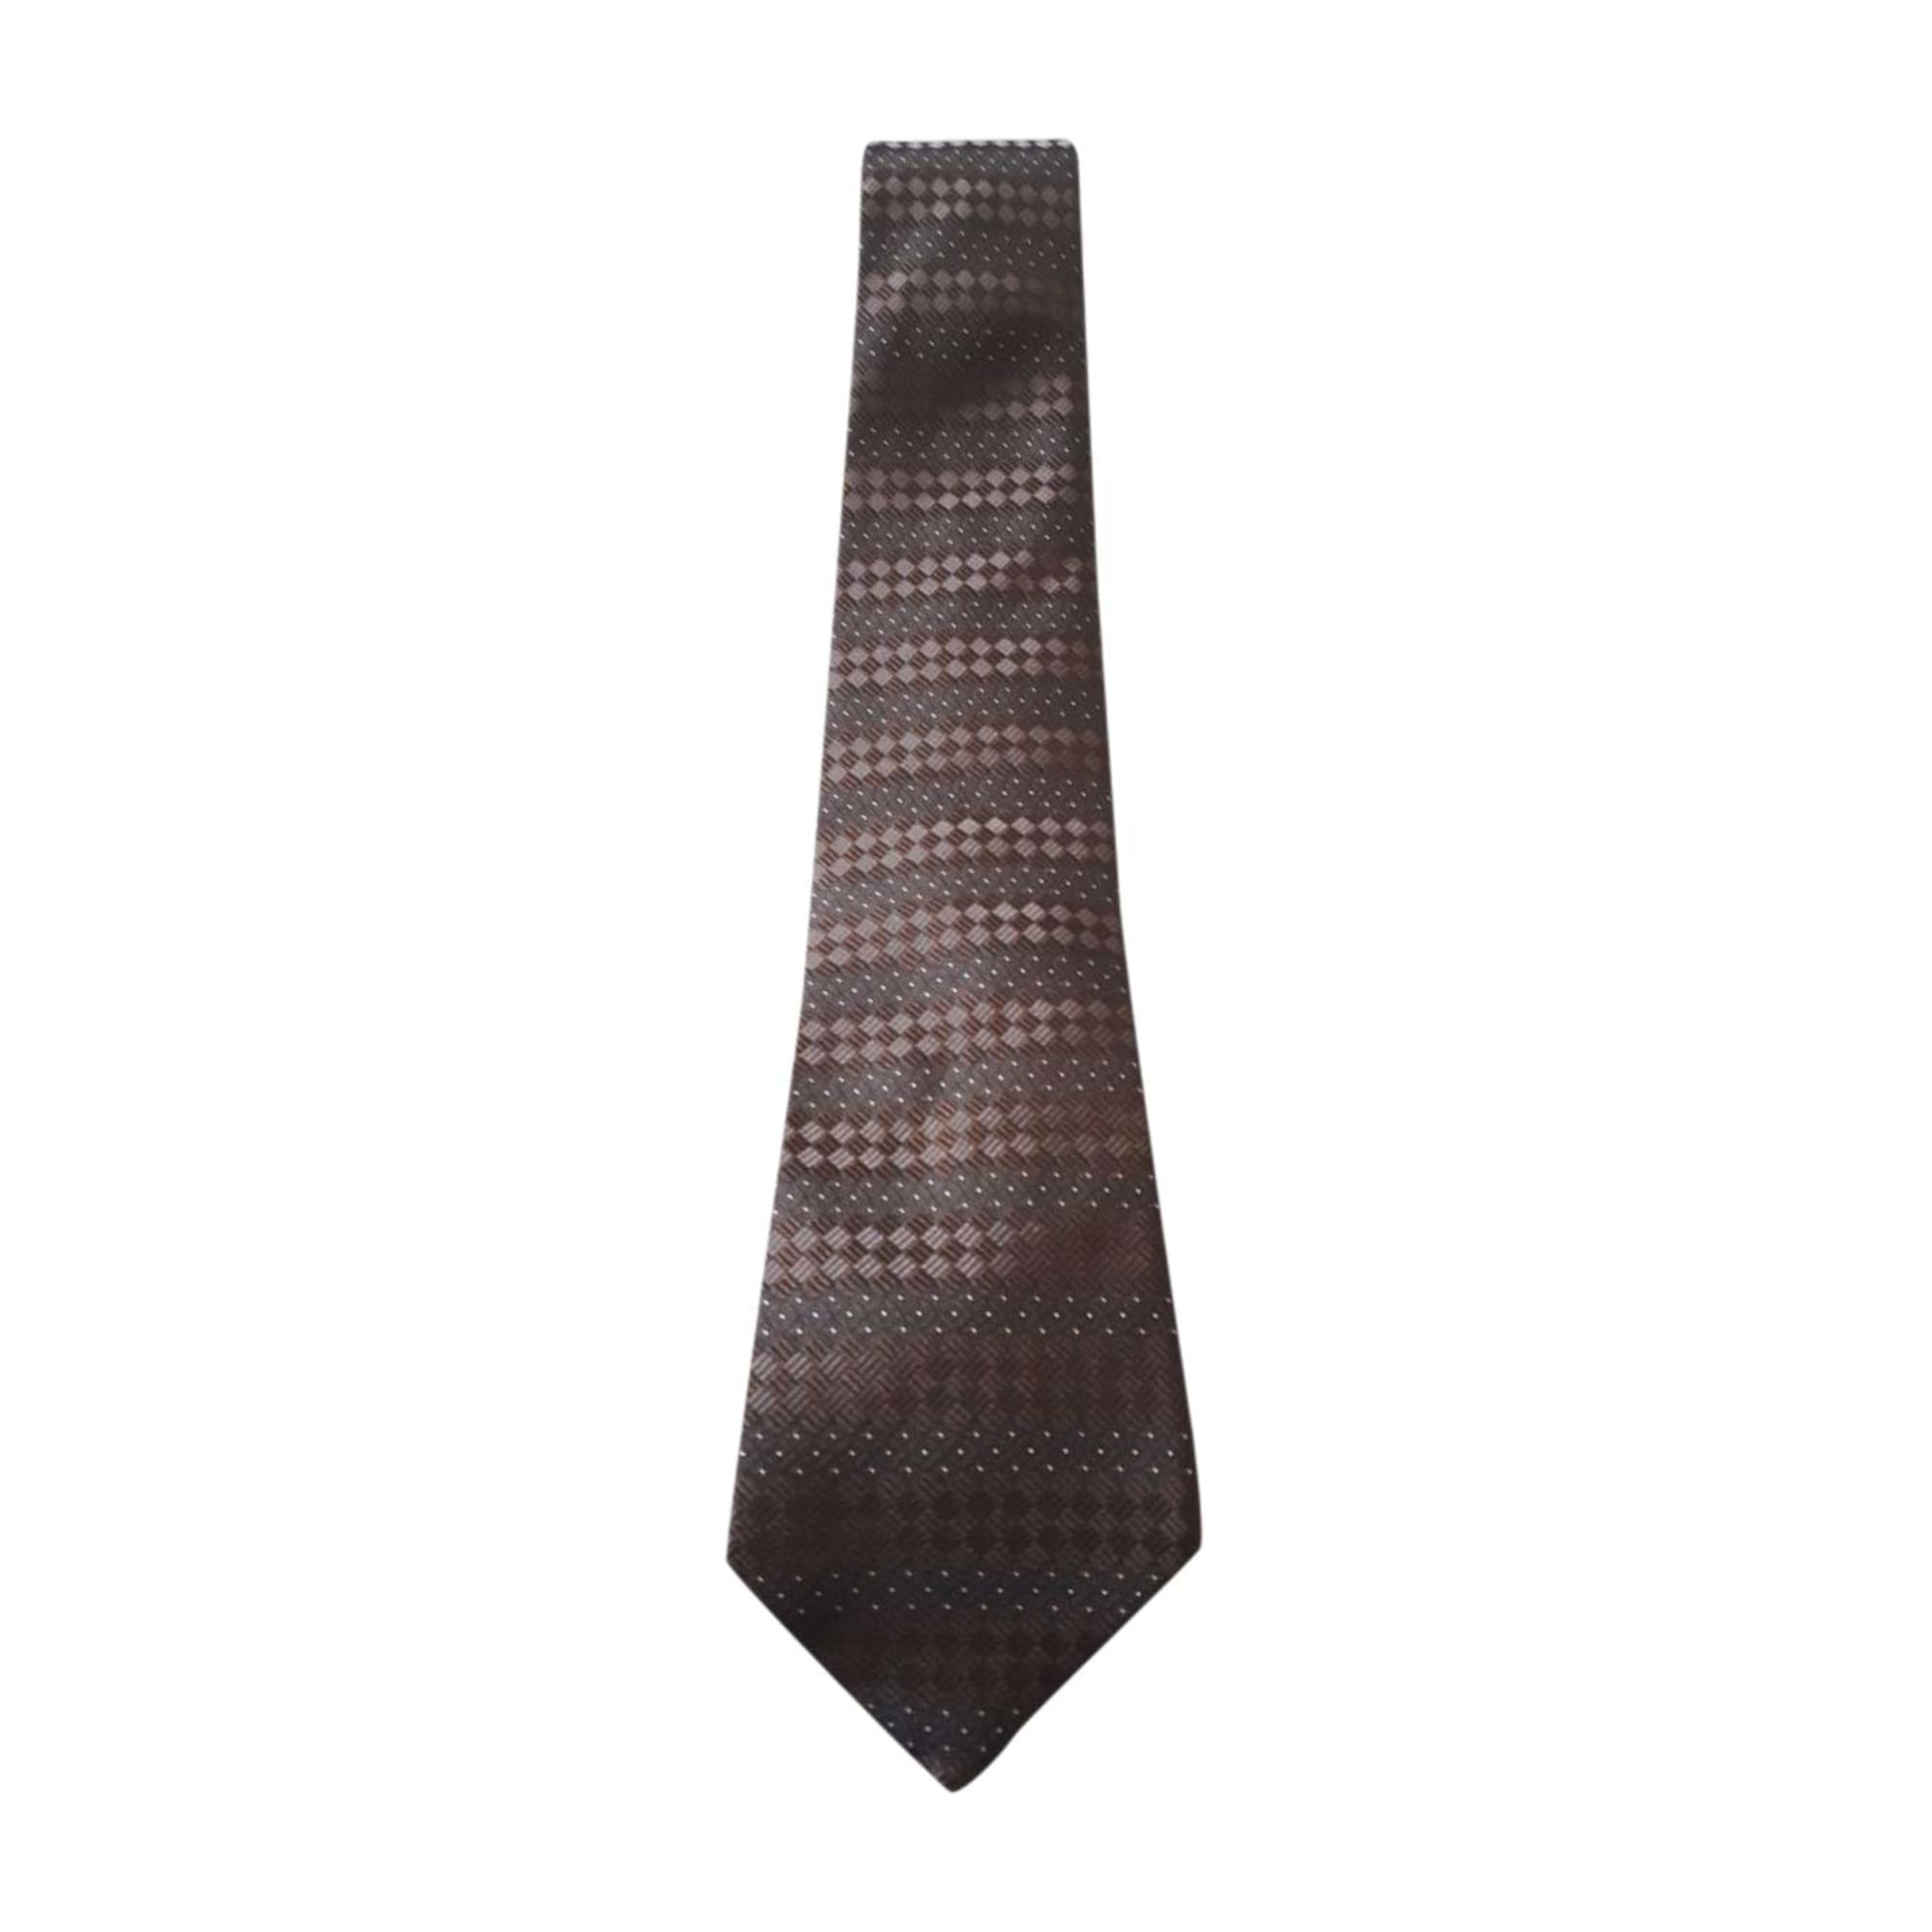 Tie LOUIS VUITTON Brown